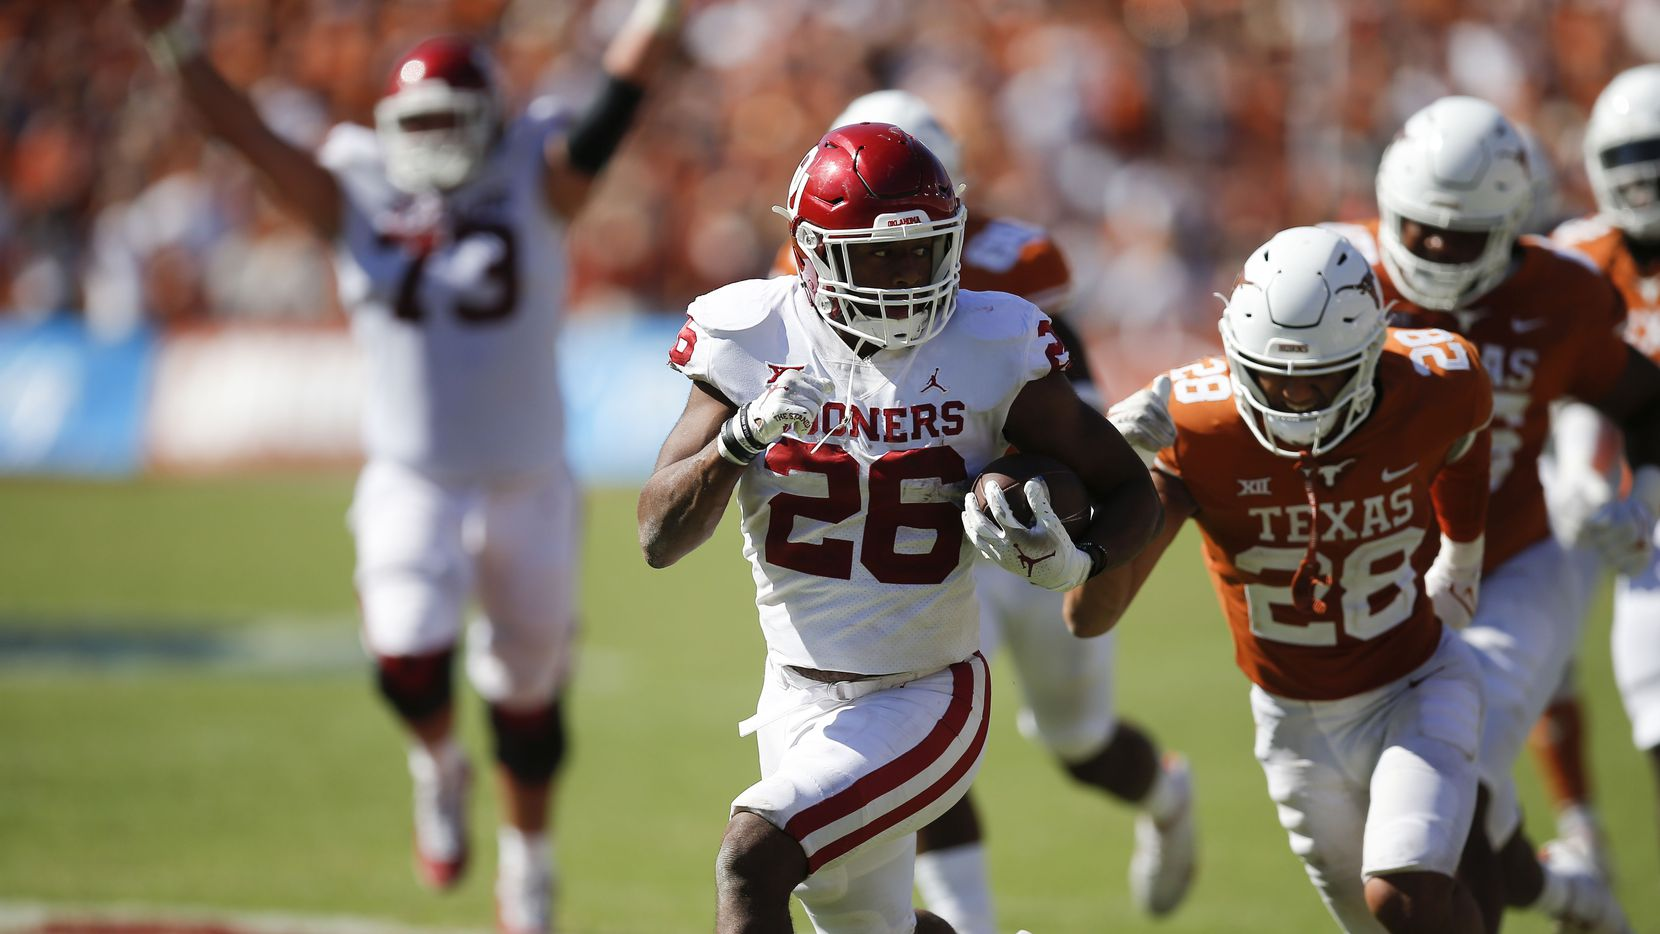 Oklahoma running back Kennedy Brooks (26) breaks past the Texas defense to score the game winning touchdown with three seconds remaining during the second half of an NCAA college football game against Texas at the Cotton Bowl in Fair Park, Saturday, October 9, 2021. Oklahoma won 55-48.